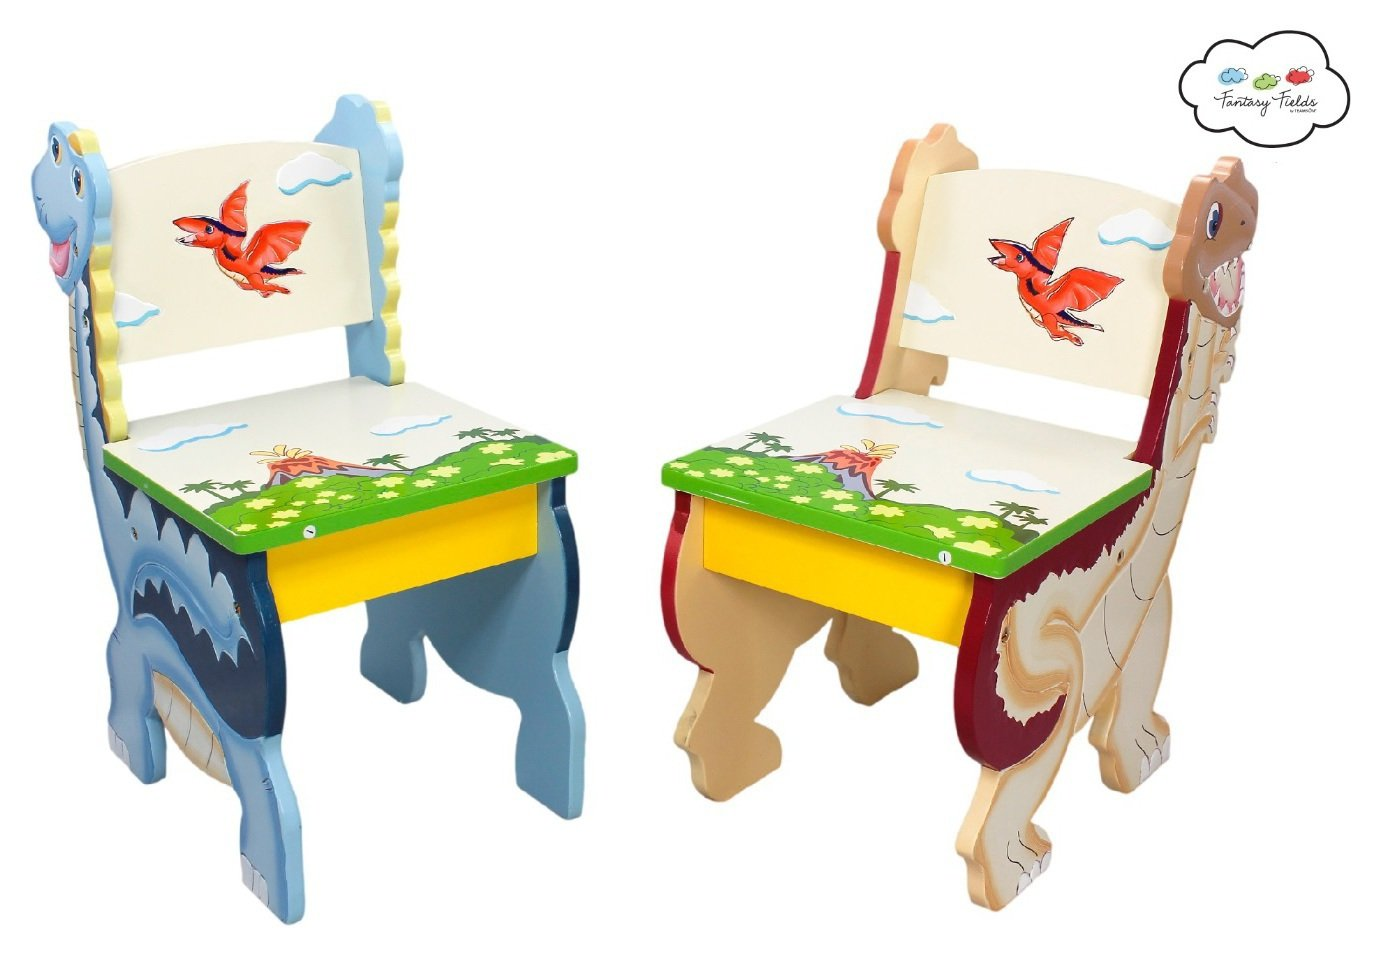 Image of Fantasy Fields Dinosaur Table and Chairs Set.